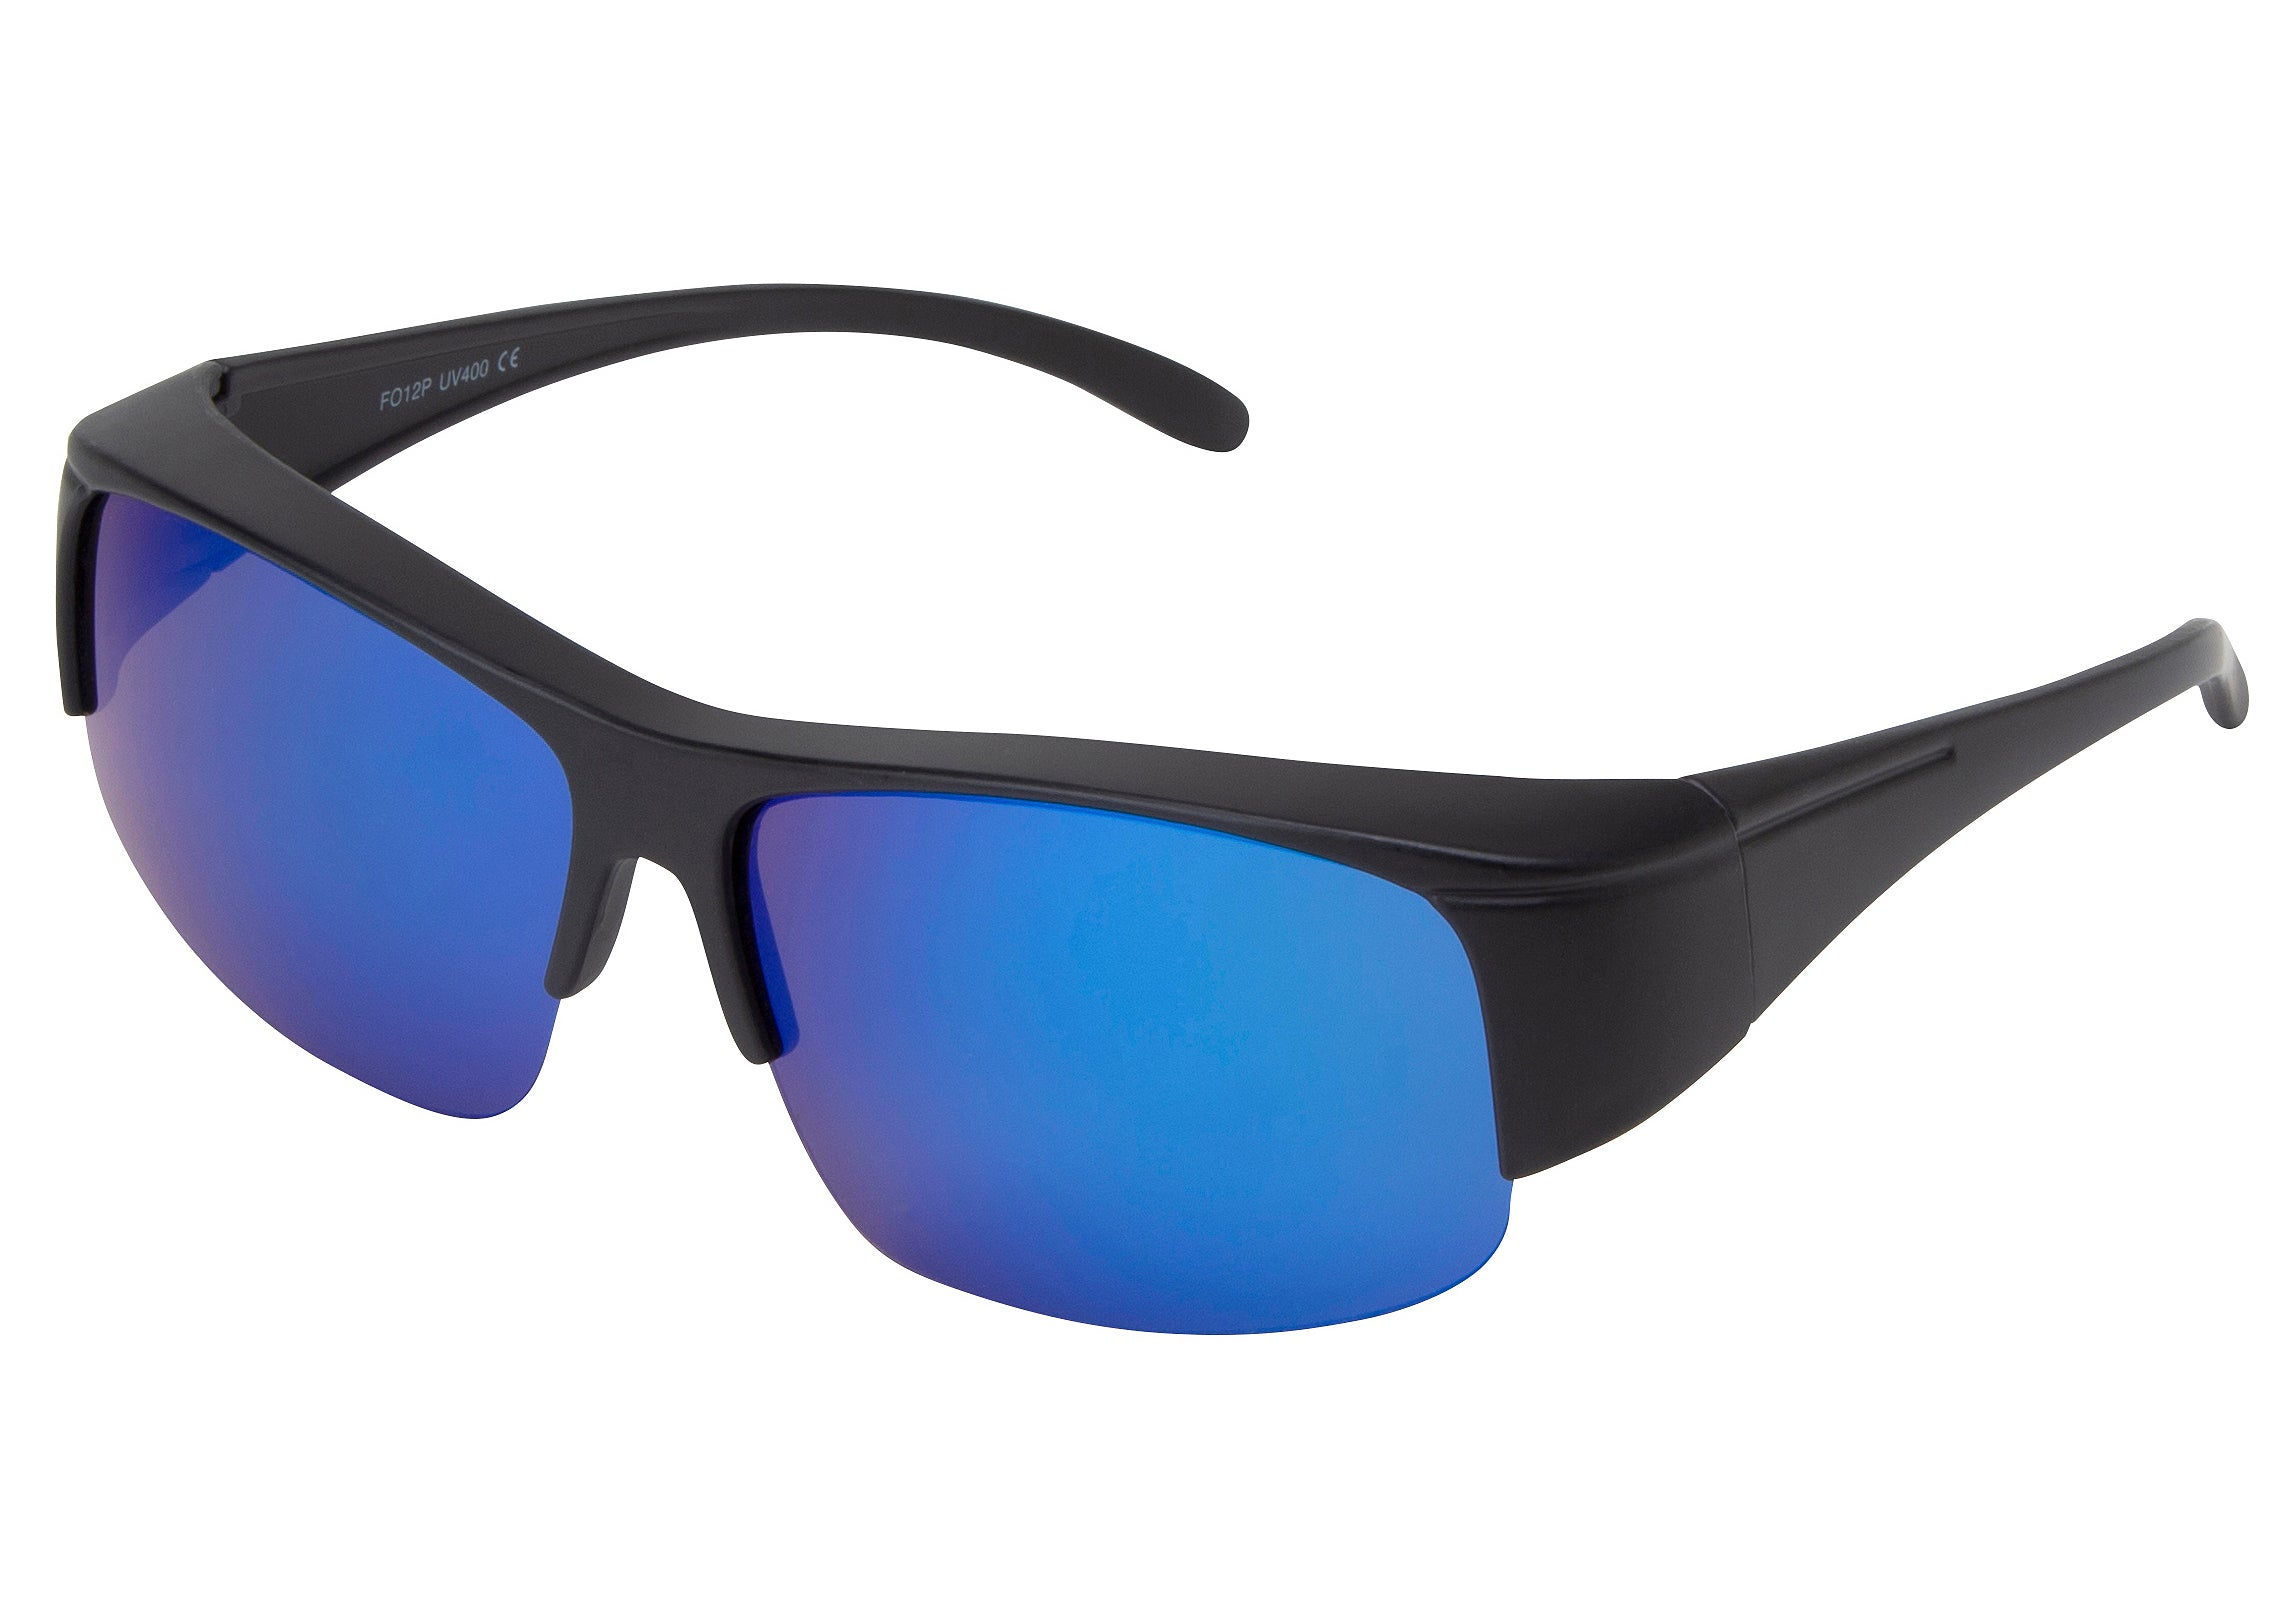 FO12P - Polarized Fitover Sunglasses Shaded